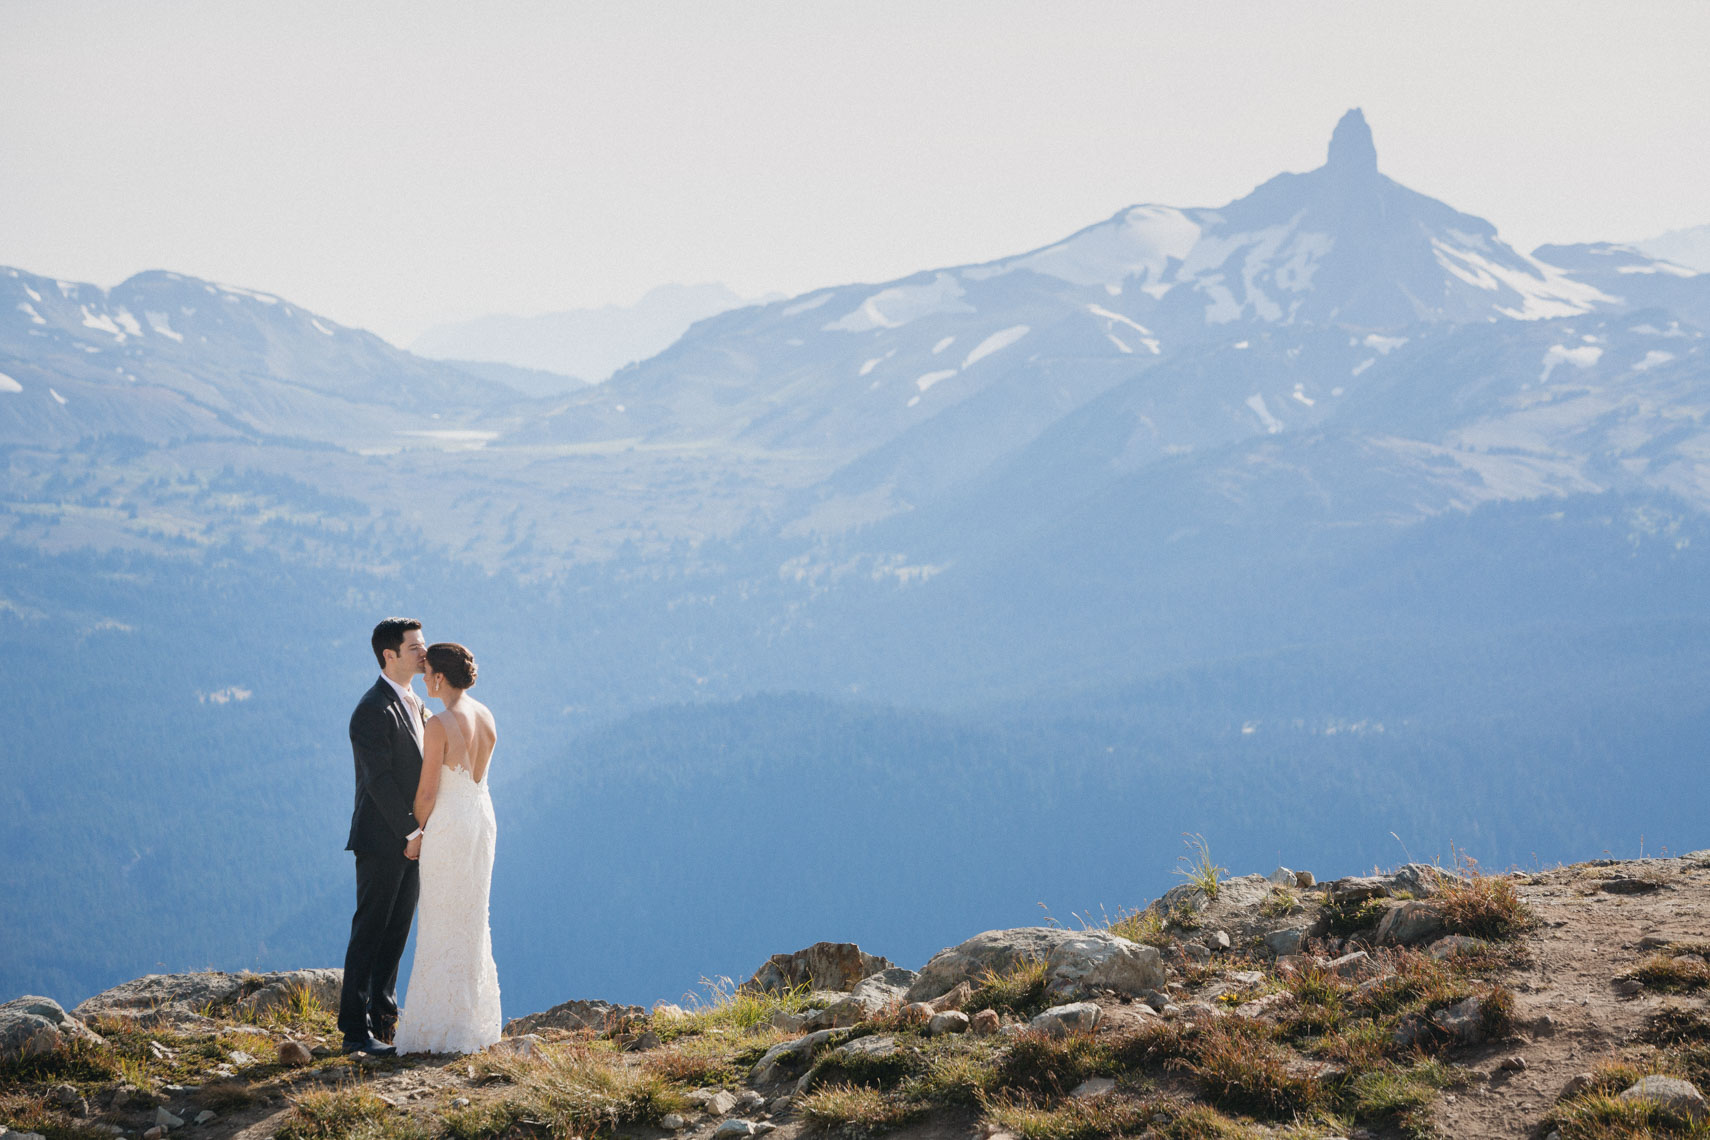 Wedding photographer from whistler shows tusk peak with bride and groom